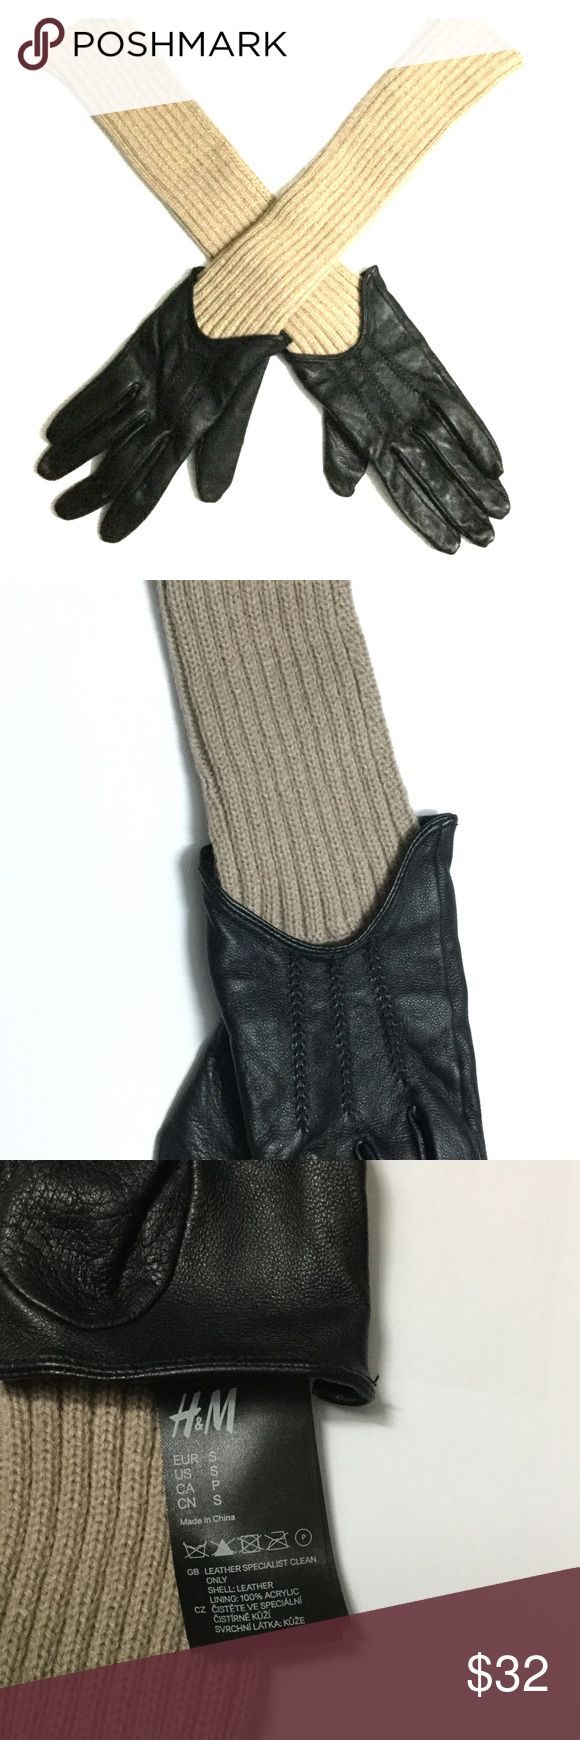 H&M Trend Long Sleeve Knit & Leather Combo Gloves These gloves keep you ultra chic and warm in cold weather! They are uniquely made with soft leather & knit. These neutral colors go with everything.  From H & M Trend collection, high quality!  Size S. Length of sleeve: approx. 10.5 inches. Used only once, in great condition!  ** No trade ** H&M Accessories Gloves & Mittens